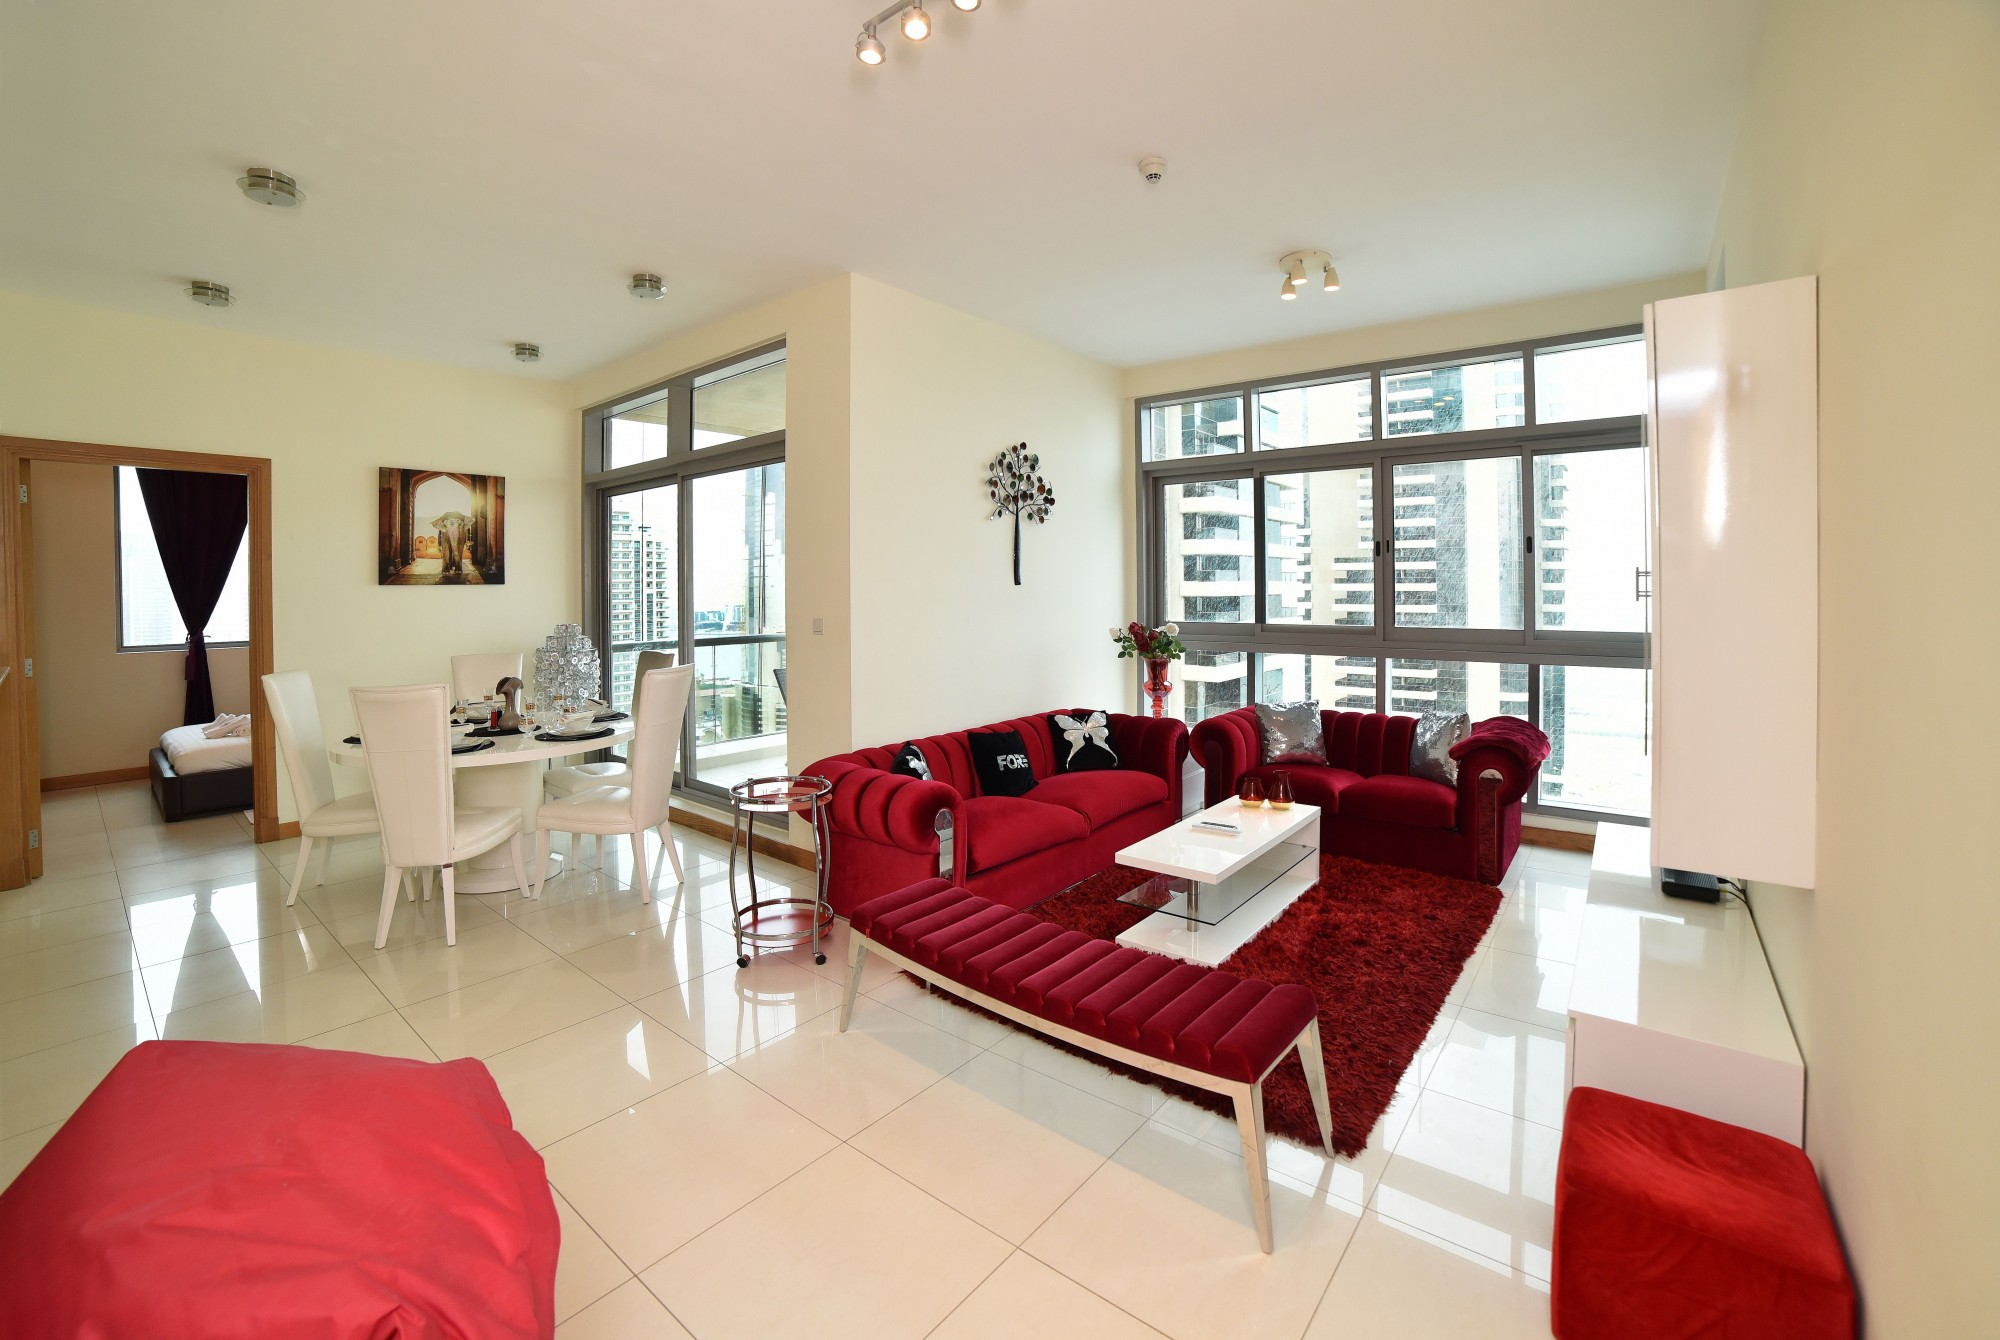 3 Bedroom Beautiful Home with awesome view in Iris Blue